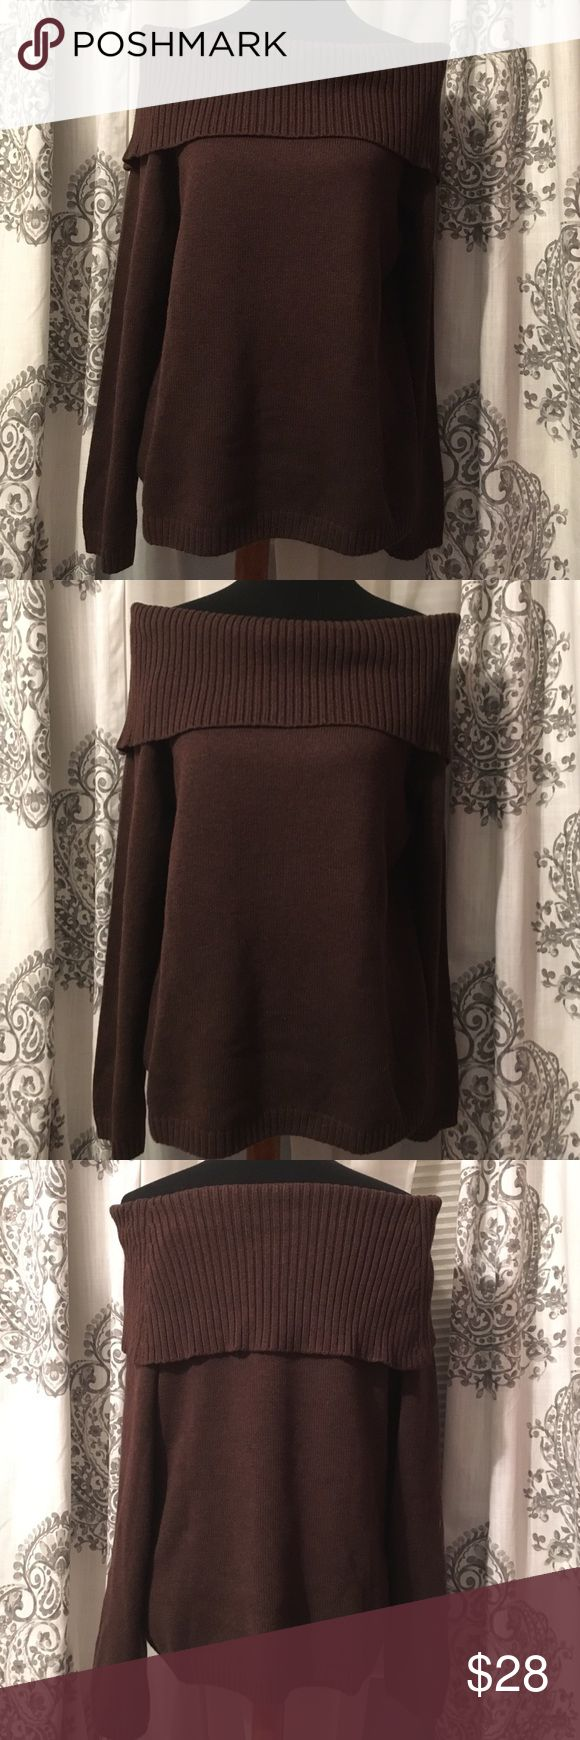 Willi Smith XL Brown Sweater NWOT Never worn, perfect condition. Dark Brown Wili Smith off the shoulder sweater. Heavy weight and very comfortable. XL. 90% Cotton 10% Nylon Willi Smith Sweaters